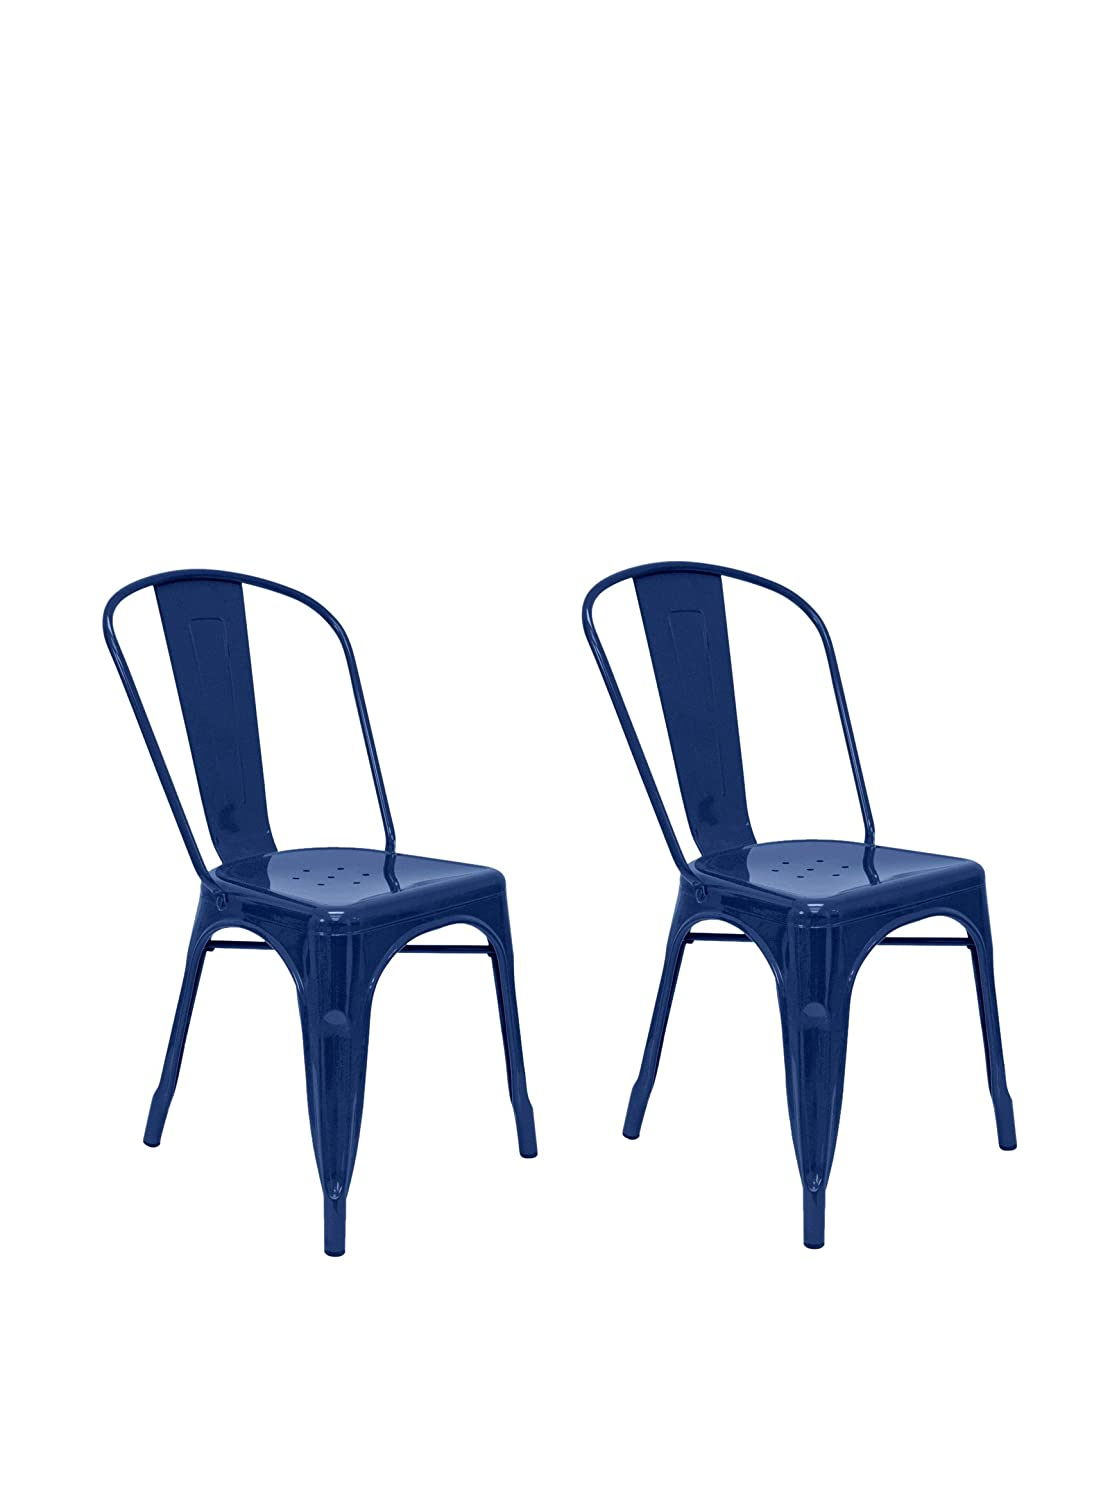 Aeon Furniture Side Chair in Navy Blue – Set of 2